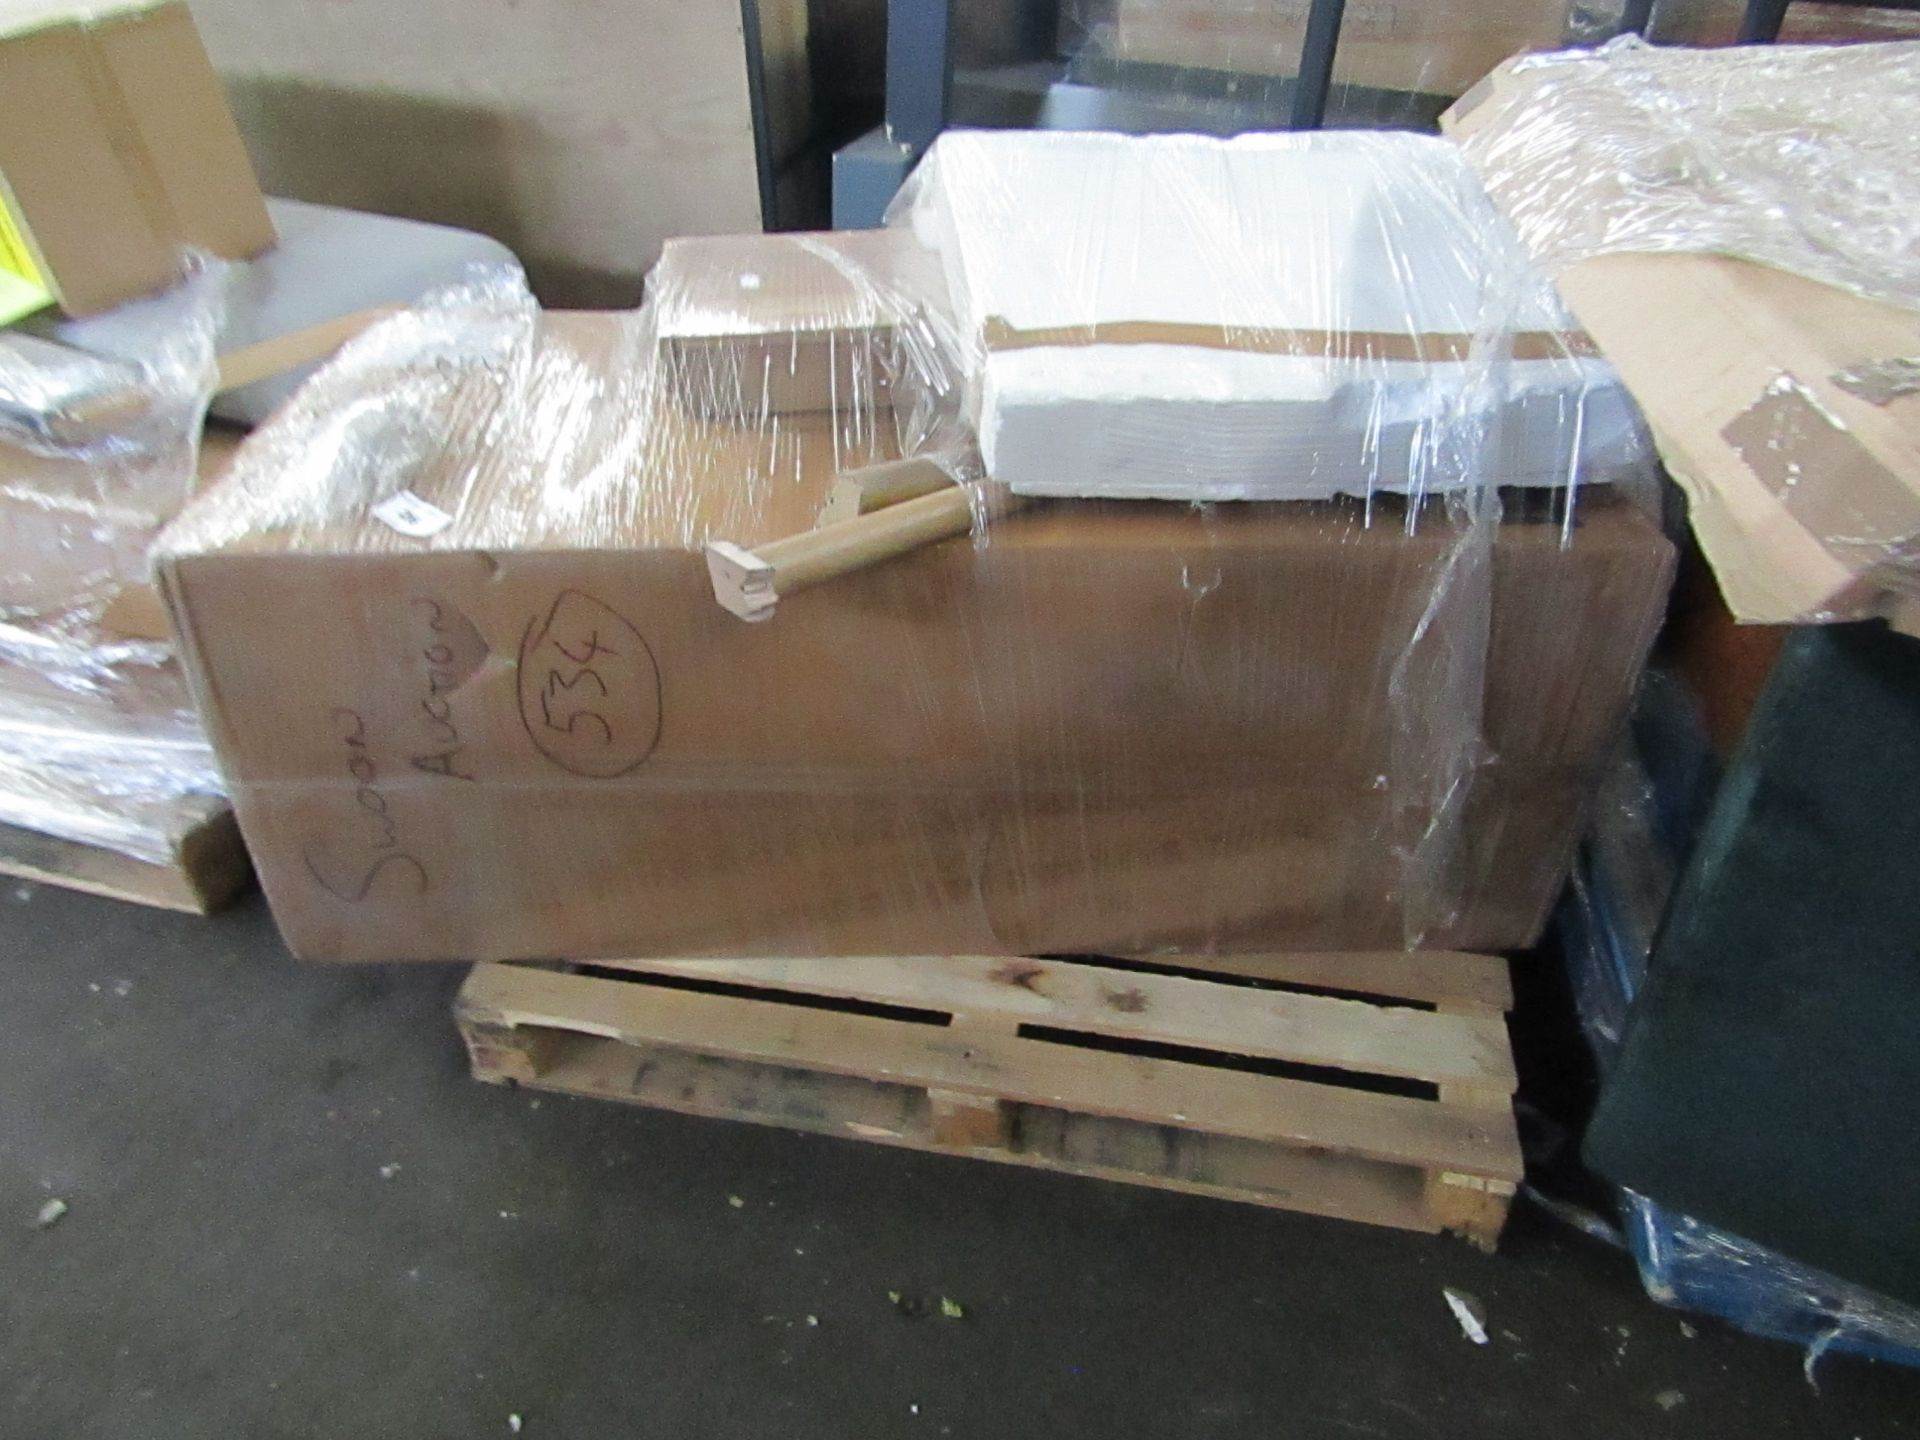   1X   PALLET OF FAULTY / MISSING PARTS / DAMAGED CUSTOMER RETURNS SWOON STOCK UNMANIFESTED   PALLET